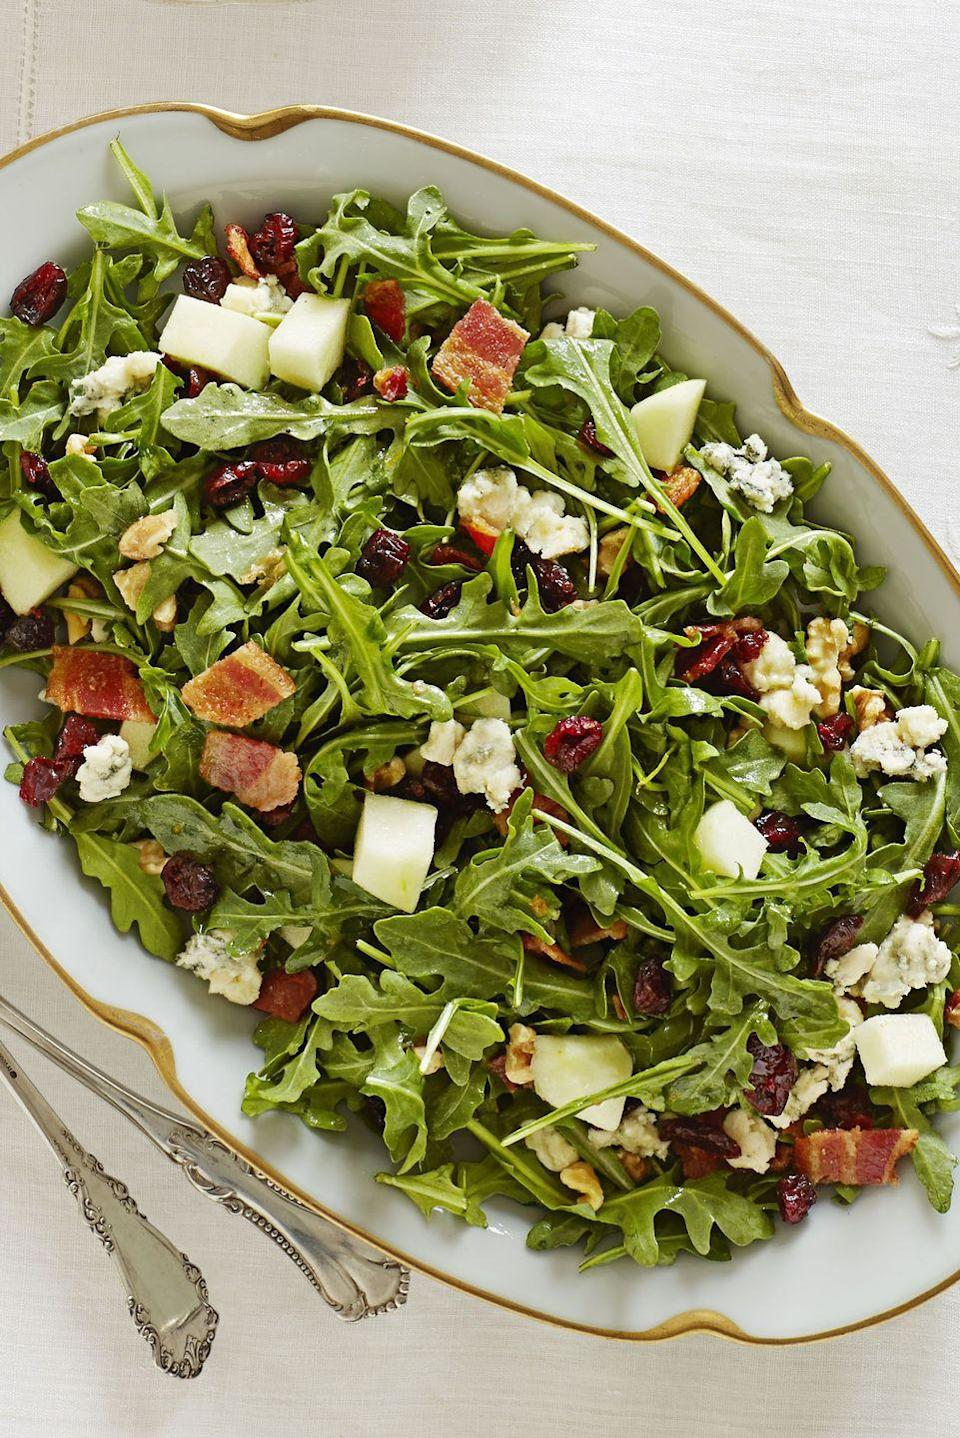 "<p>Bacon and blue cheese give this salad an exciting twist, while the orange dressing, arugula, and apples keep it lively and fresh.</p><p><em><a href=""https://www.goodhousekeeping.com/food-recipes/a11597/cape-cod-chopped-salad-recipe-ghk1113/"" rel=""nofollow noopener"" target=""_blank"" data-ylk=""slk:Get the recipe for Cape Cod Chopped Salad »"" class=""link rapid-noclick-resp"">Get the recipe for Cape Cod Chopped Salad »</a></em></p><p><strong>RELATED: </strong><a href=""https://www.goodhousekeeping.com/holidays/thanksgiving-ideas/g1918/thanksgiving-dinner-recipes/"" rel=""nofollow noopener"" target=""_blank"" data-ylk=""slk:76 Best Thanksgiving Dinner Ideas of All Time"" class=""link rapid-noclick-resp"">76 Best Thanksgiving Dinner Ideas of All Time</a></p>"